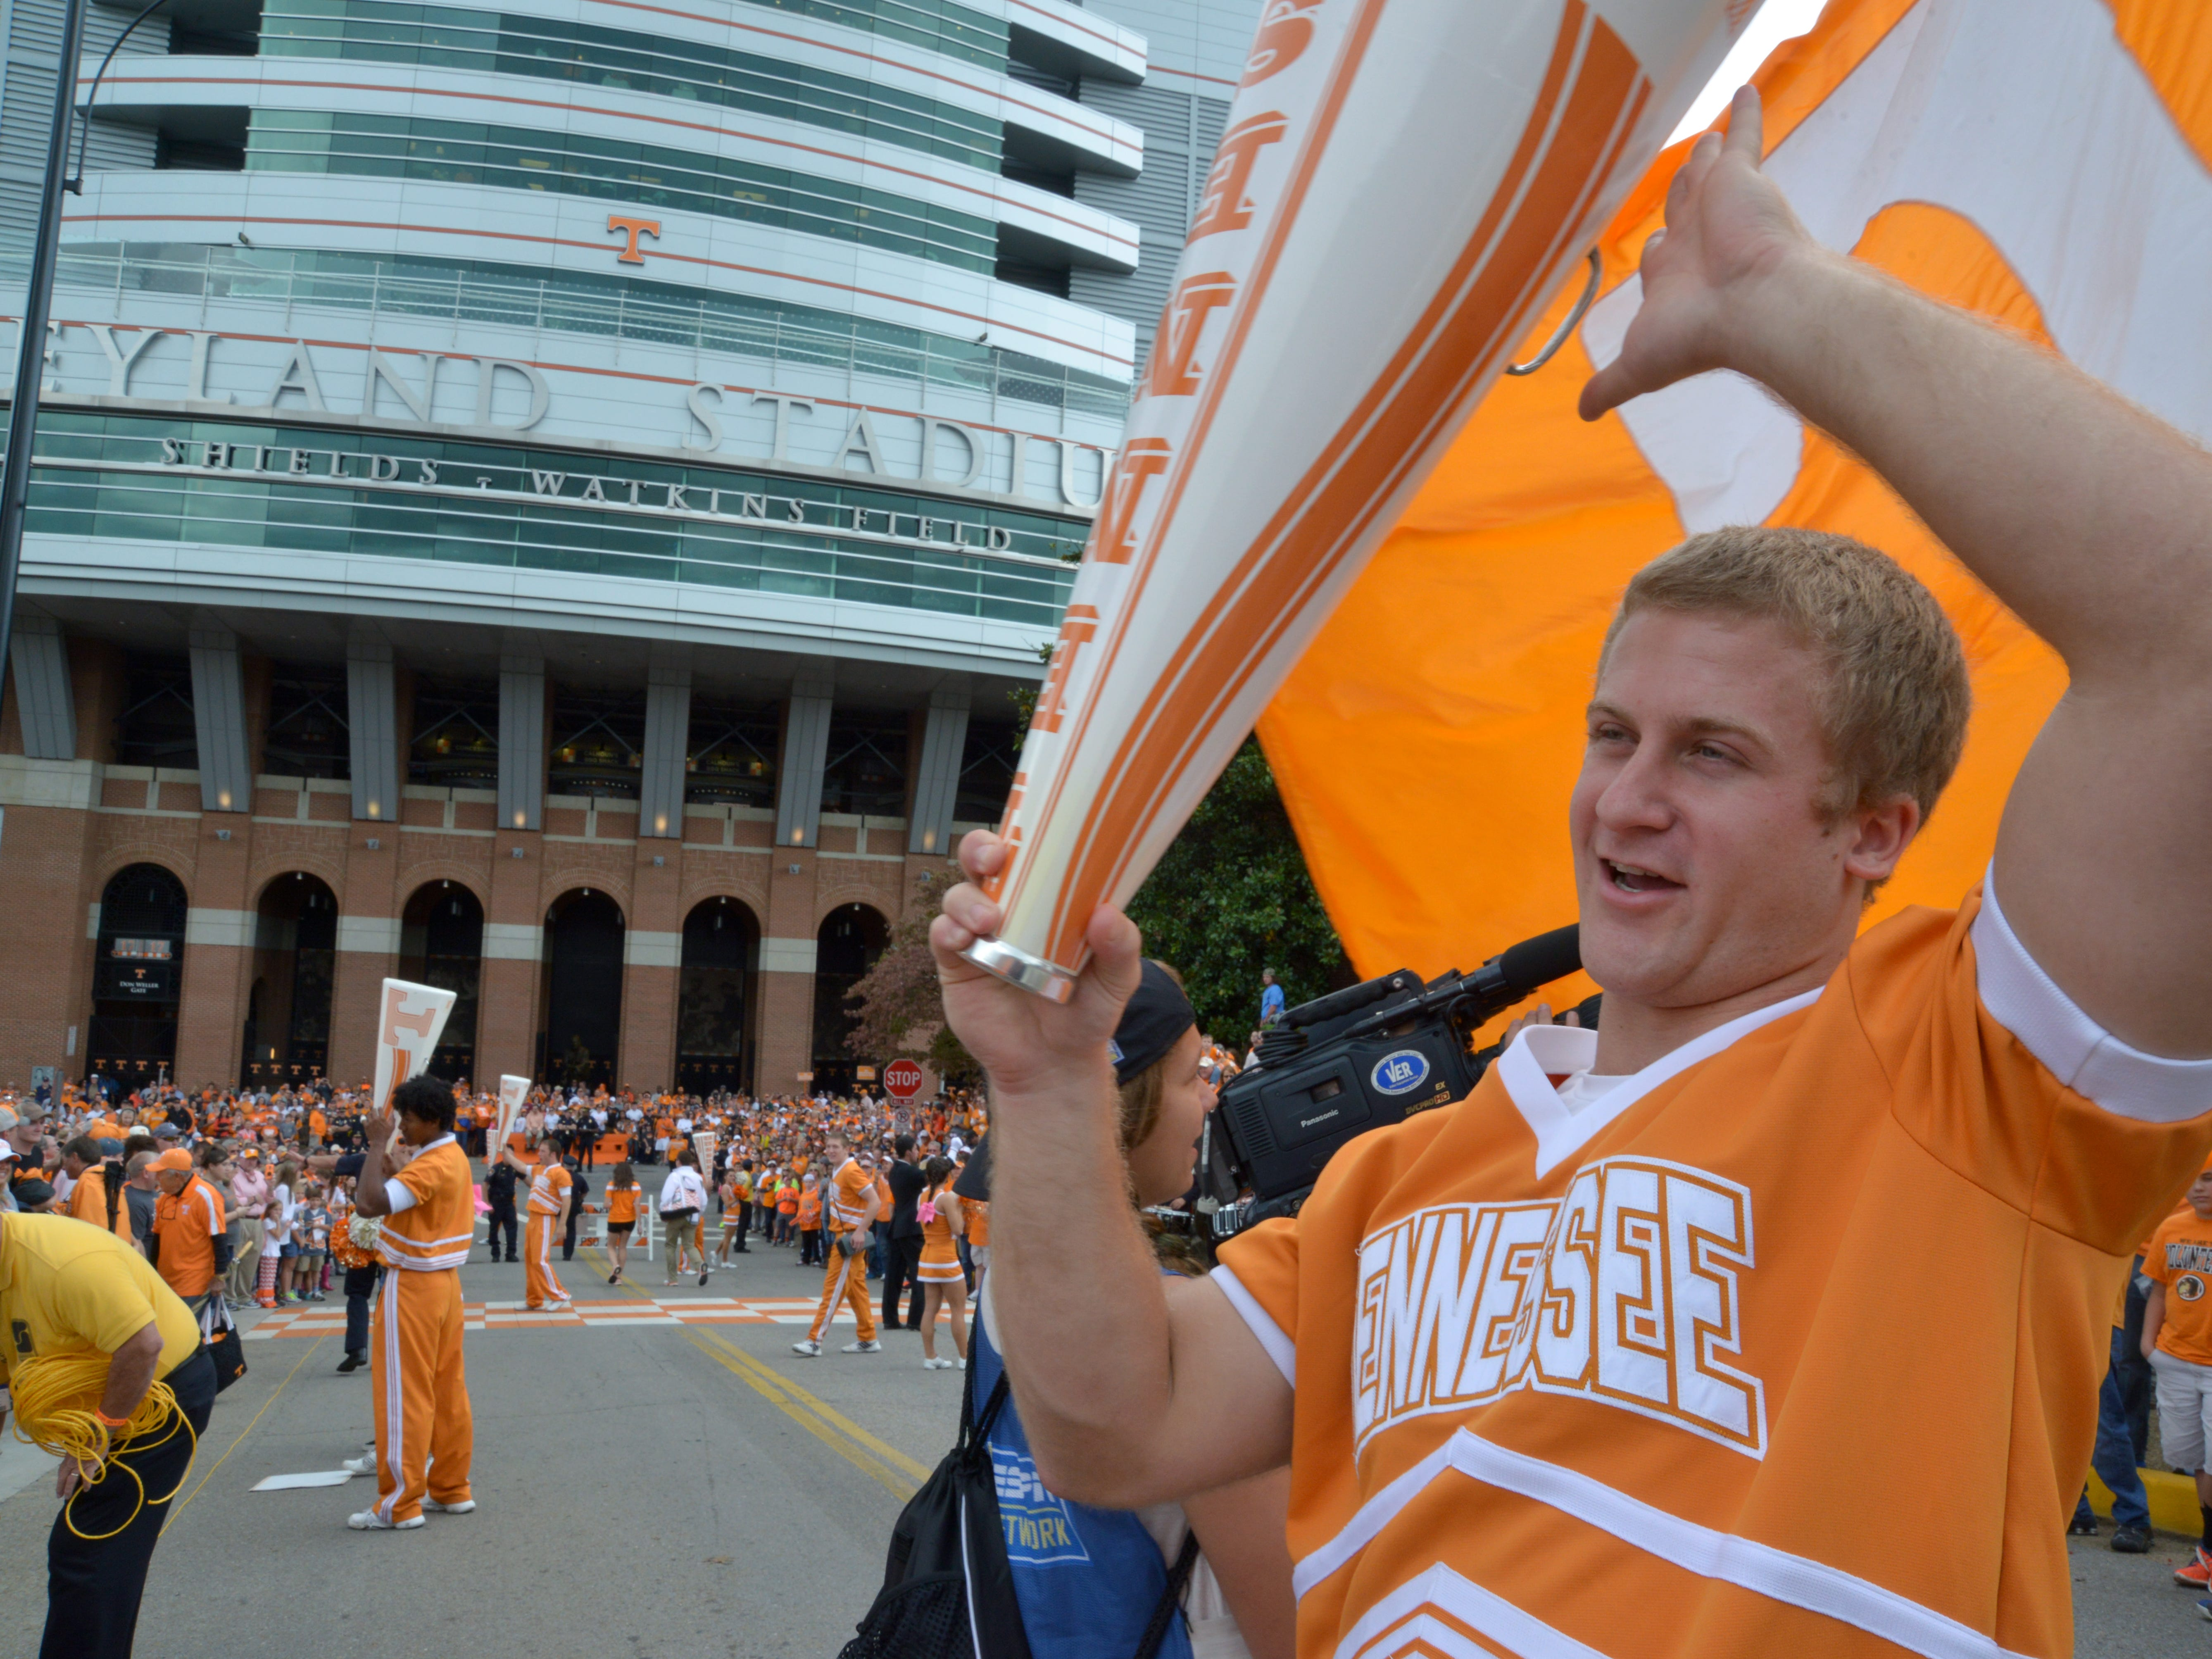 UT Cheerleader Taylor Rowland prepares the crowd the for Vol Walk before the game against UTC in Neyland Stadium, Saturday, Oct. 11, 2014 in Knoxville, Tenn.